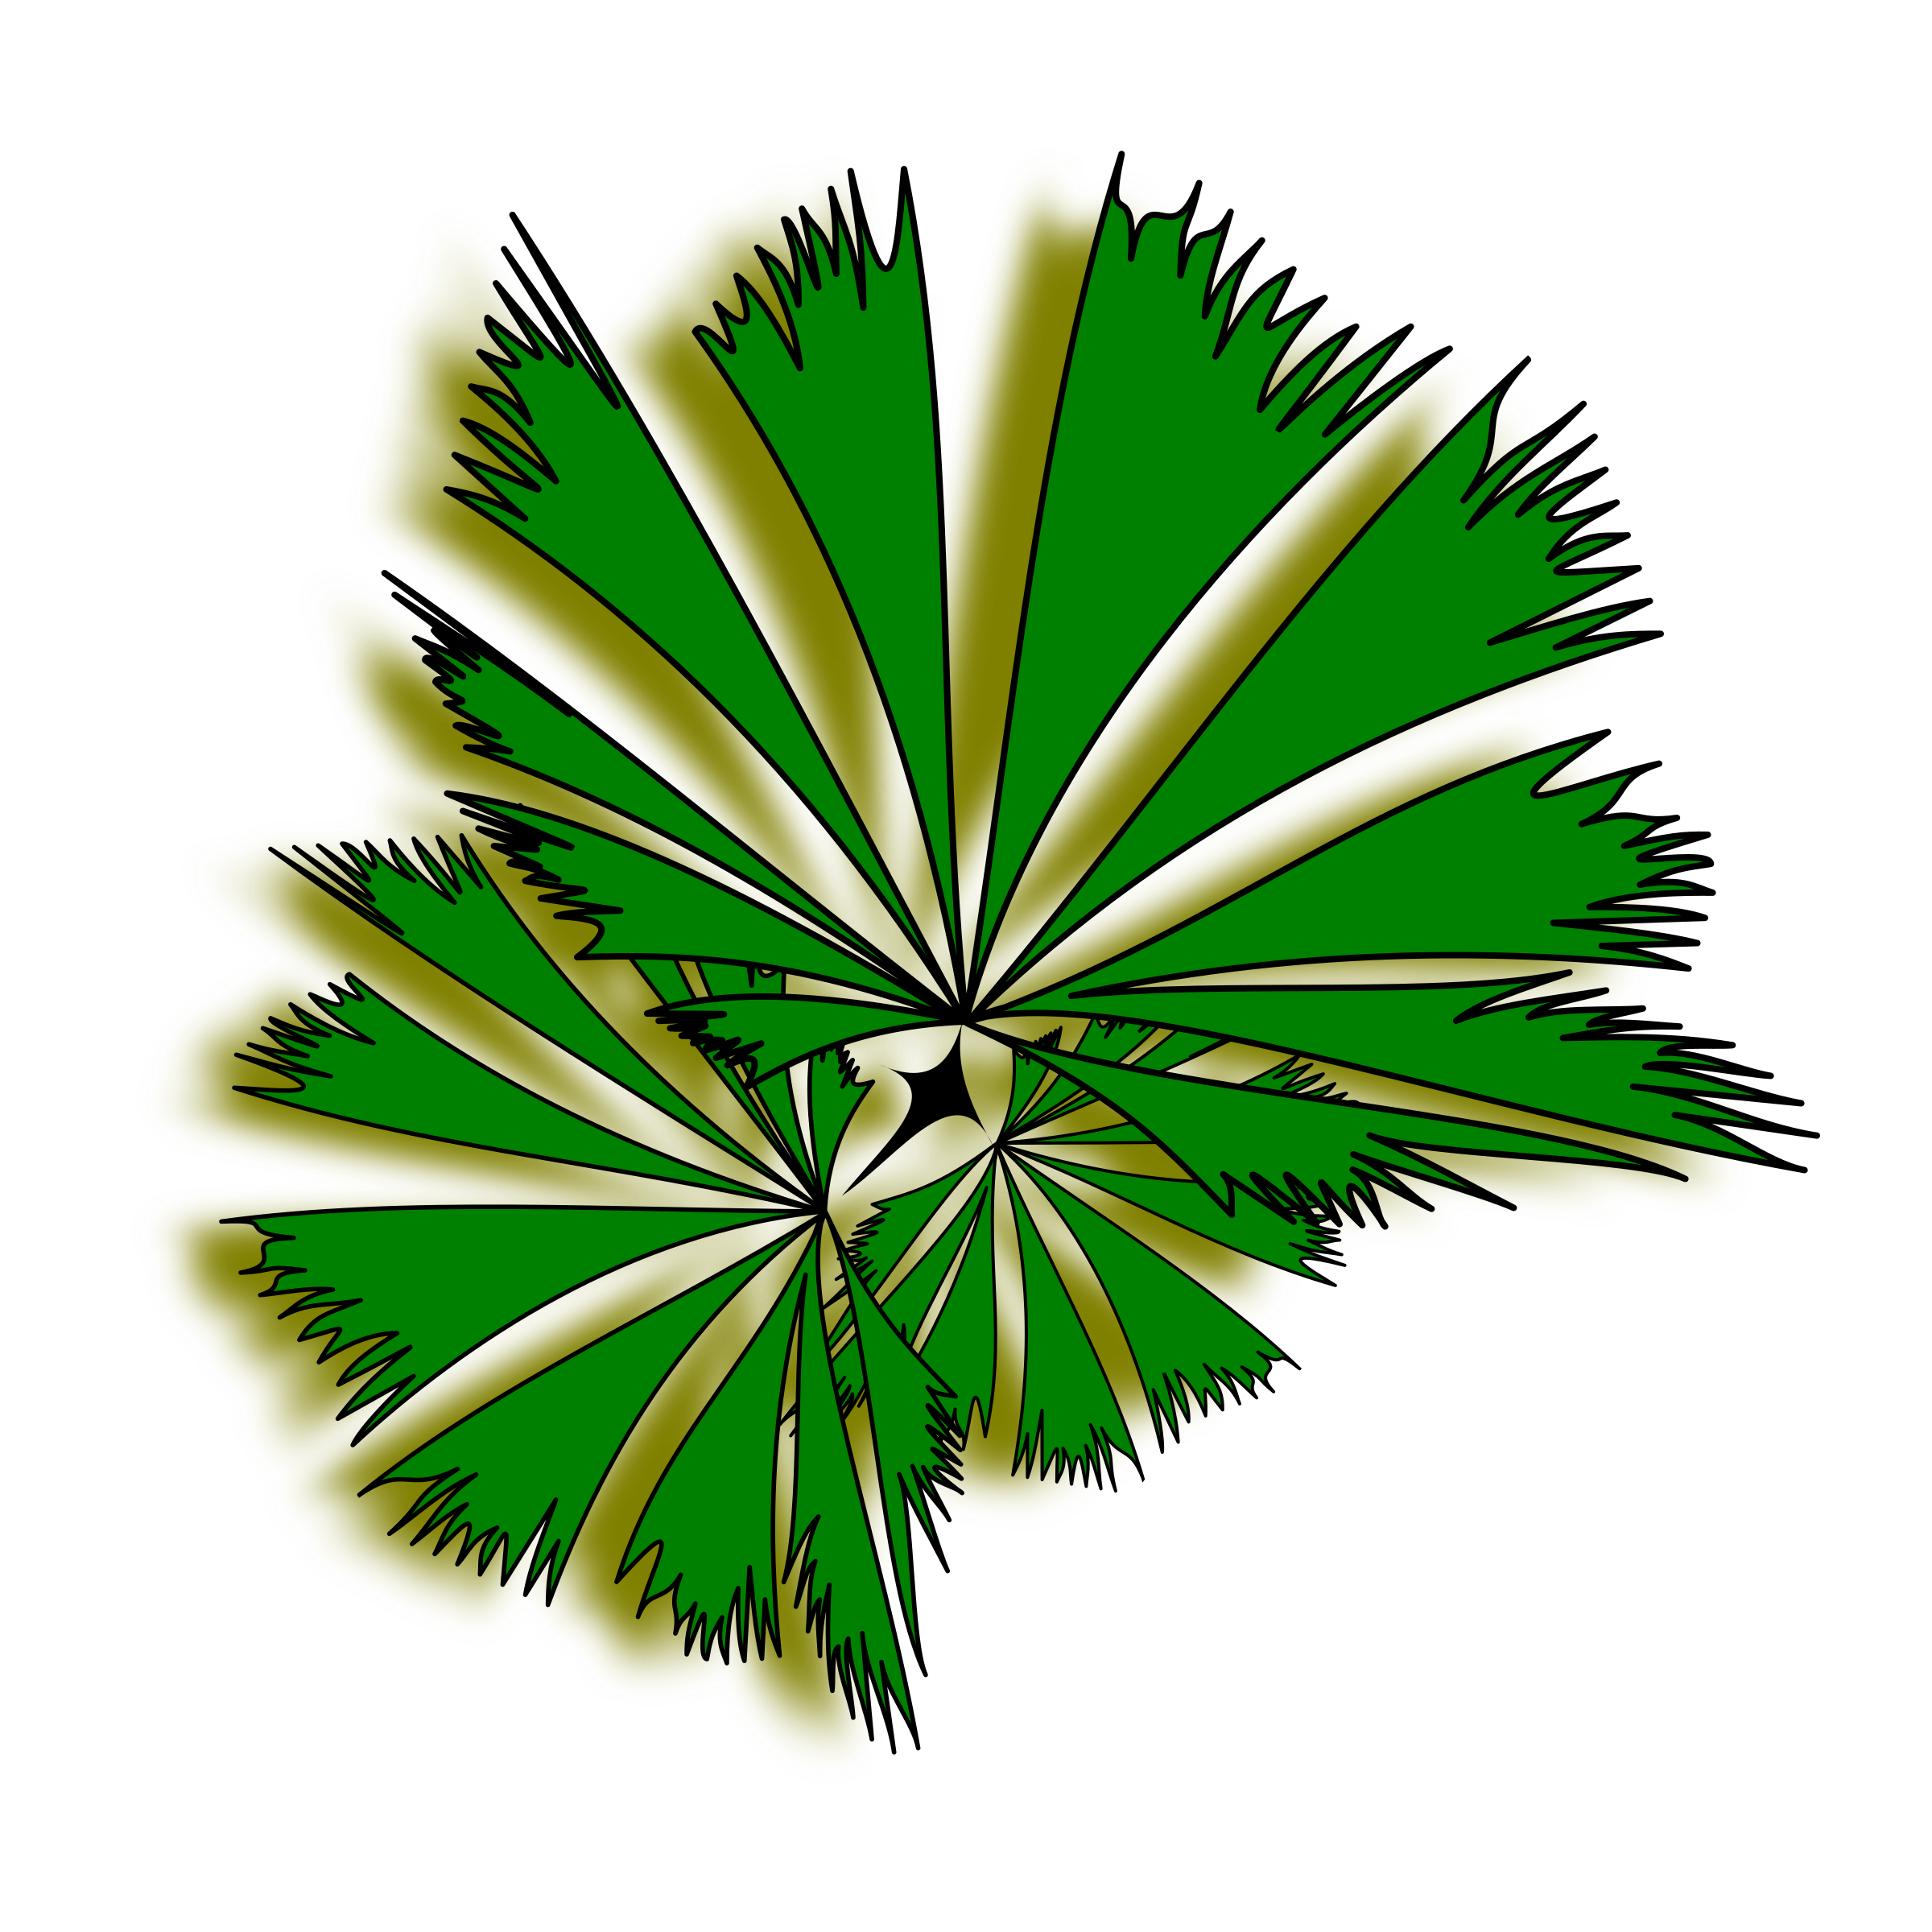 Palm tree top clipart.